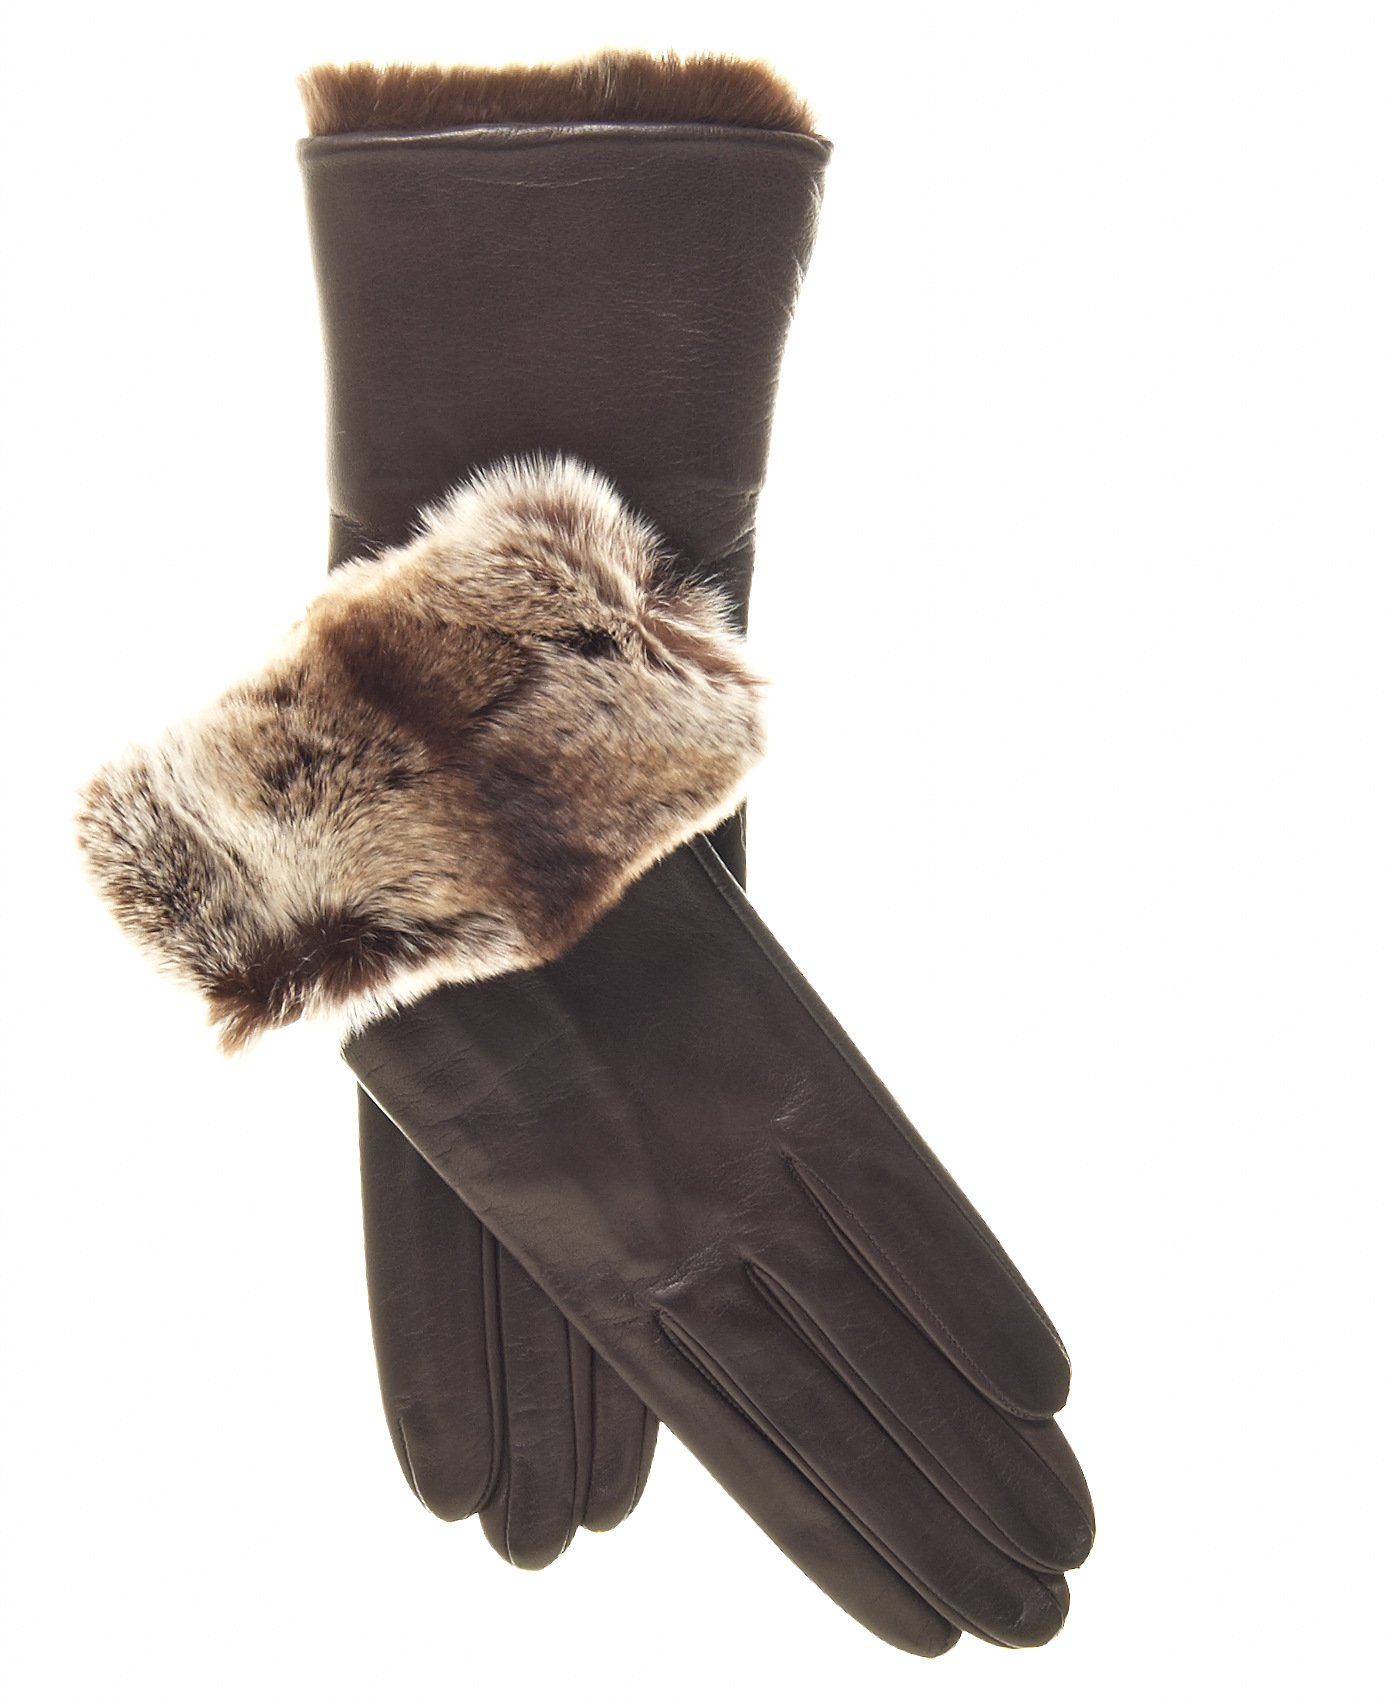 Fratelli Orsini Women's Orylag Rabbit Fur Cuff Cashmere Lined Leather Gloves Size 7 1/2 Color Brown by Fratelli Orsini (Image #5)